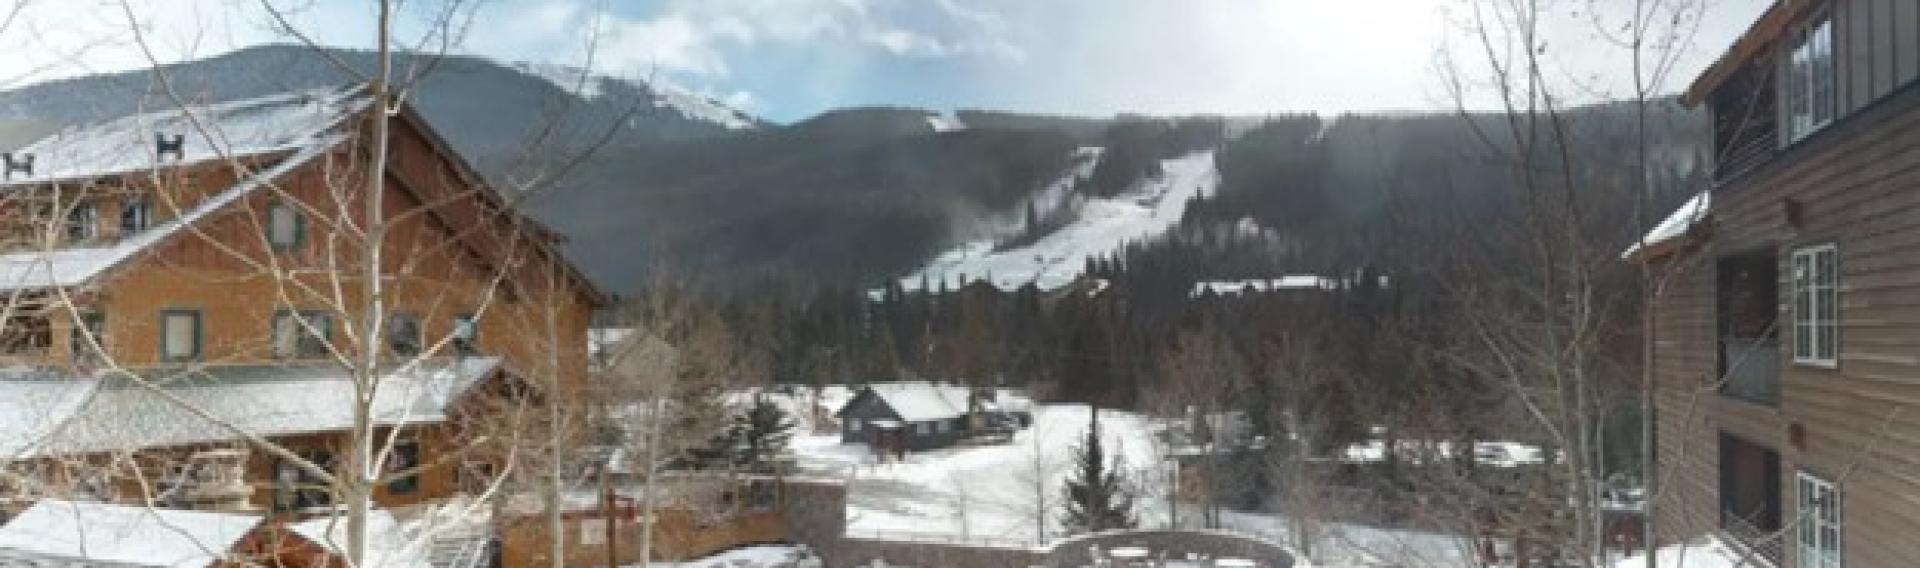 Vacasa Properties in Keystone, Colorado for CME, CLE, and CE